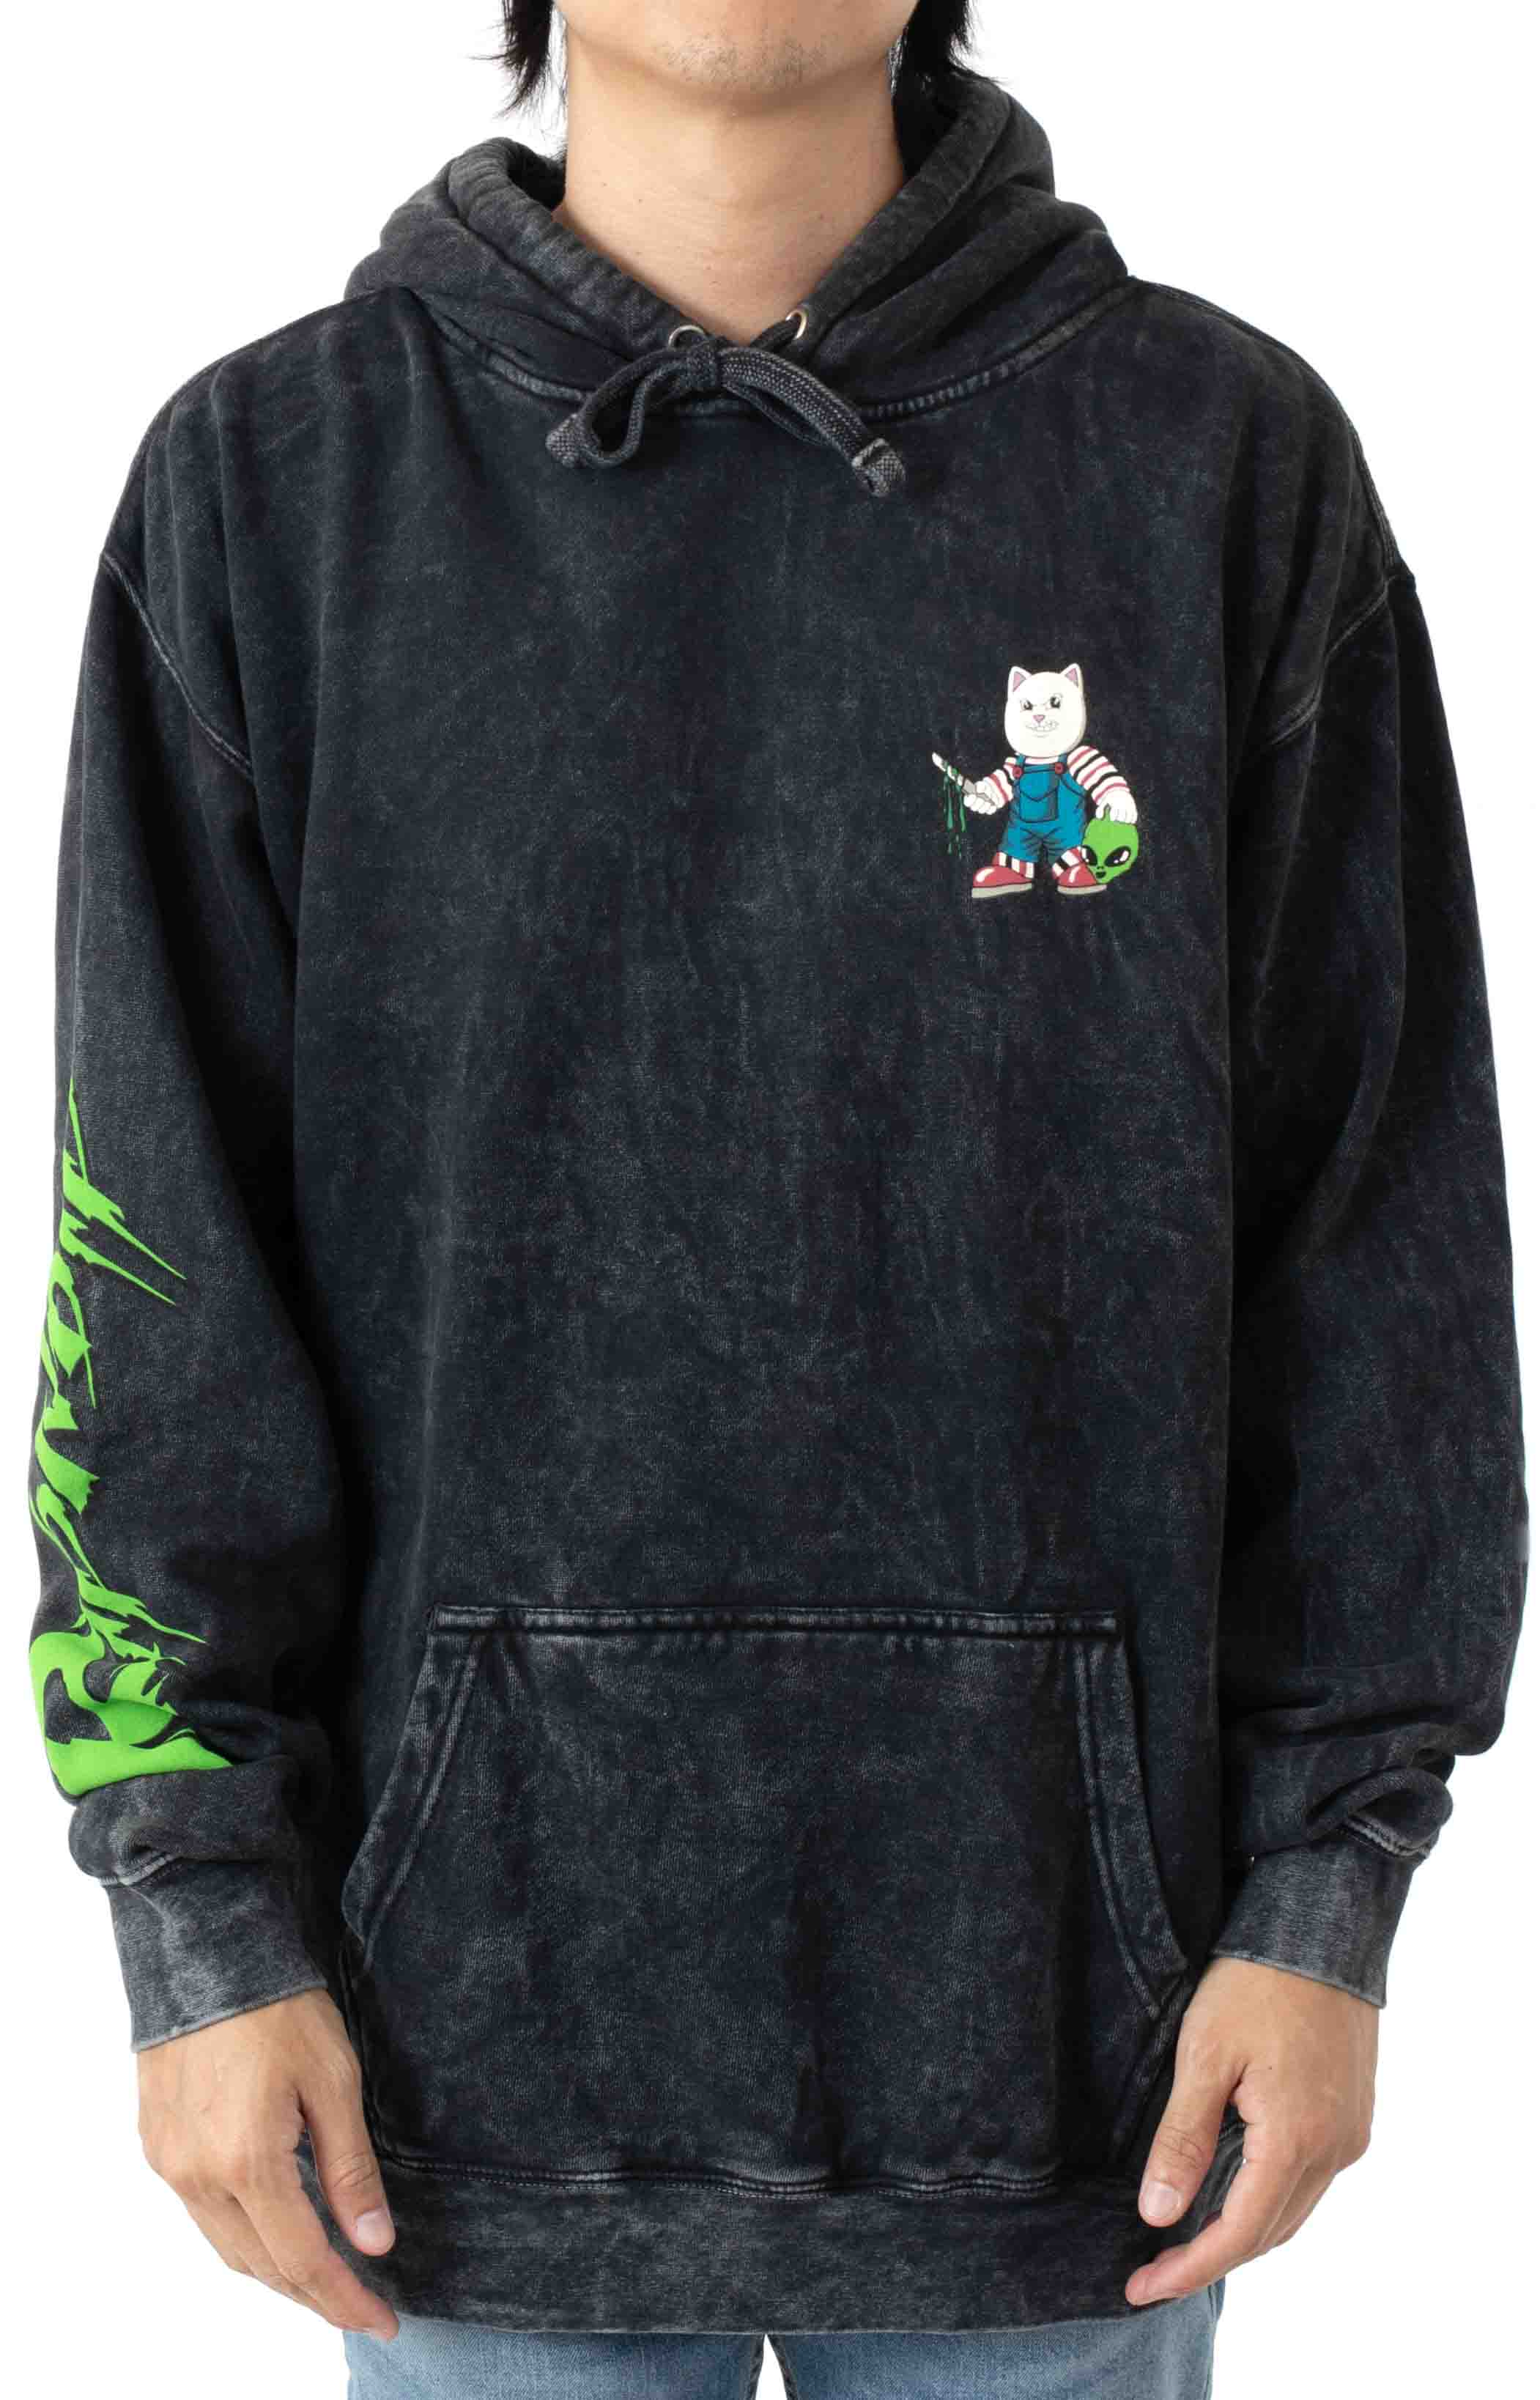 Childs Play Pullover Hoodie - Black Mineral Wash  2